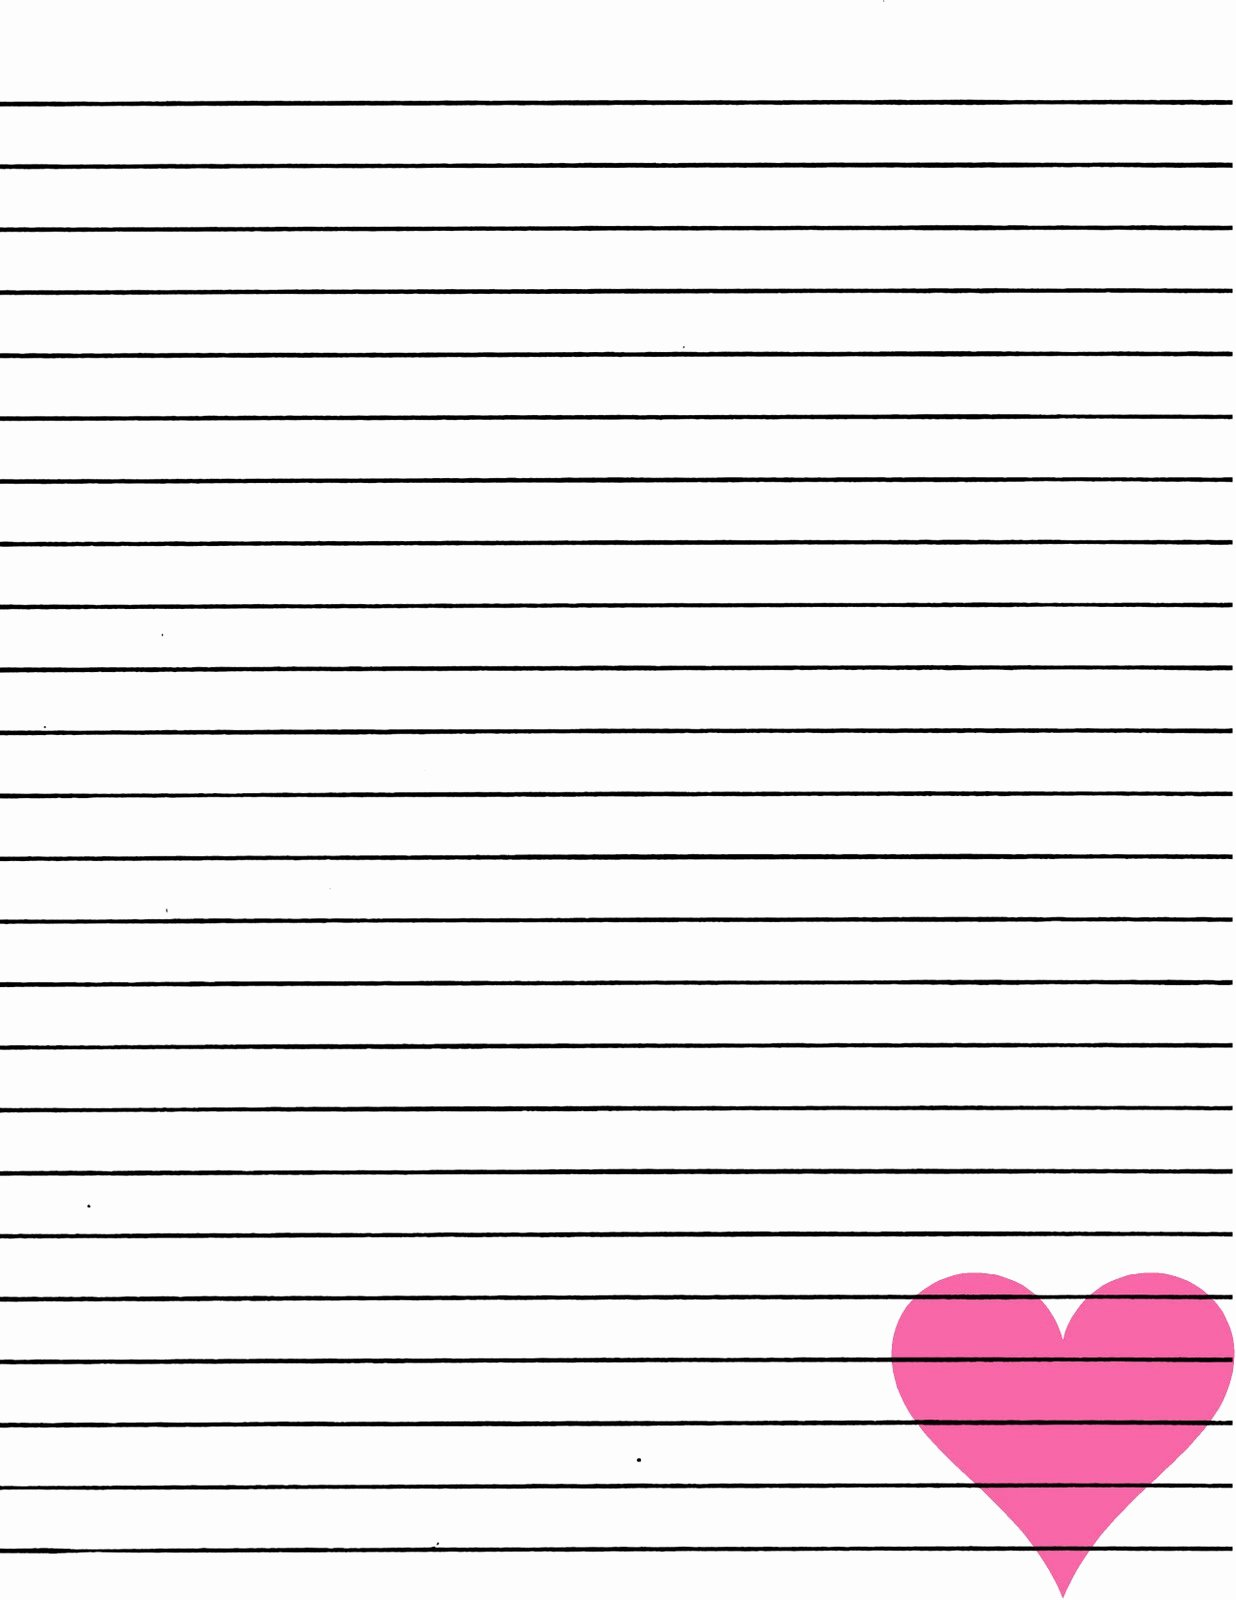 Free Printable Lined Paper Unique Just Smashing Paper Freebie Pink Heart Lined Paper